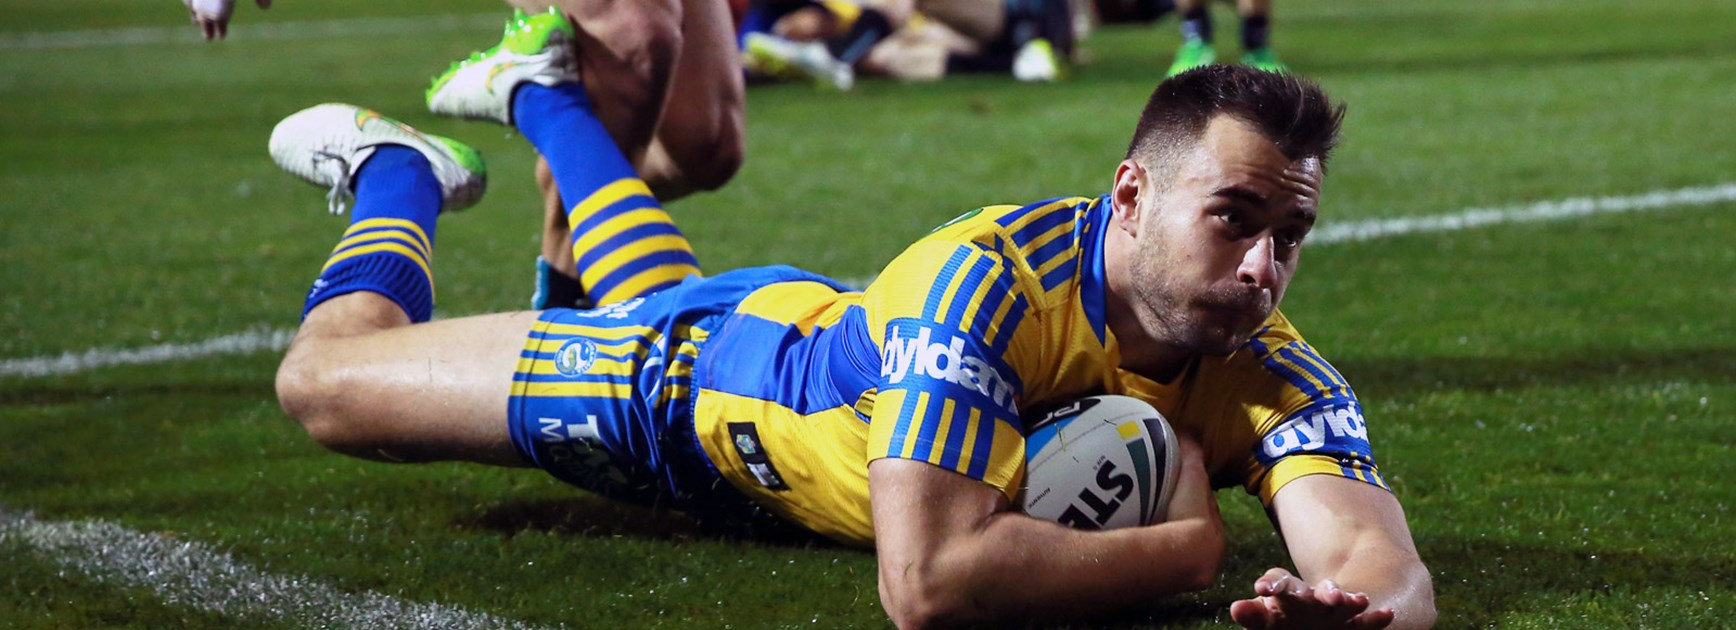 Parramatta winger Ryan Morgan scores for the Eels against the Panthers in Round 12.